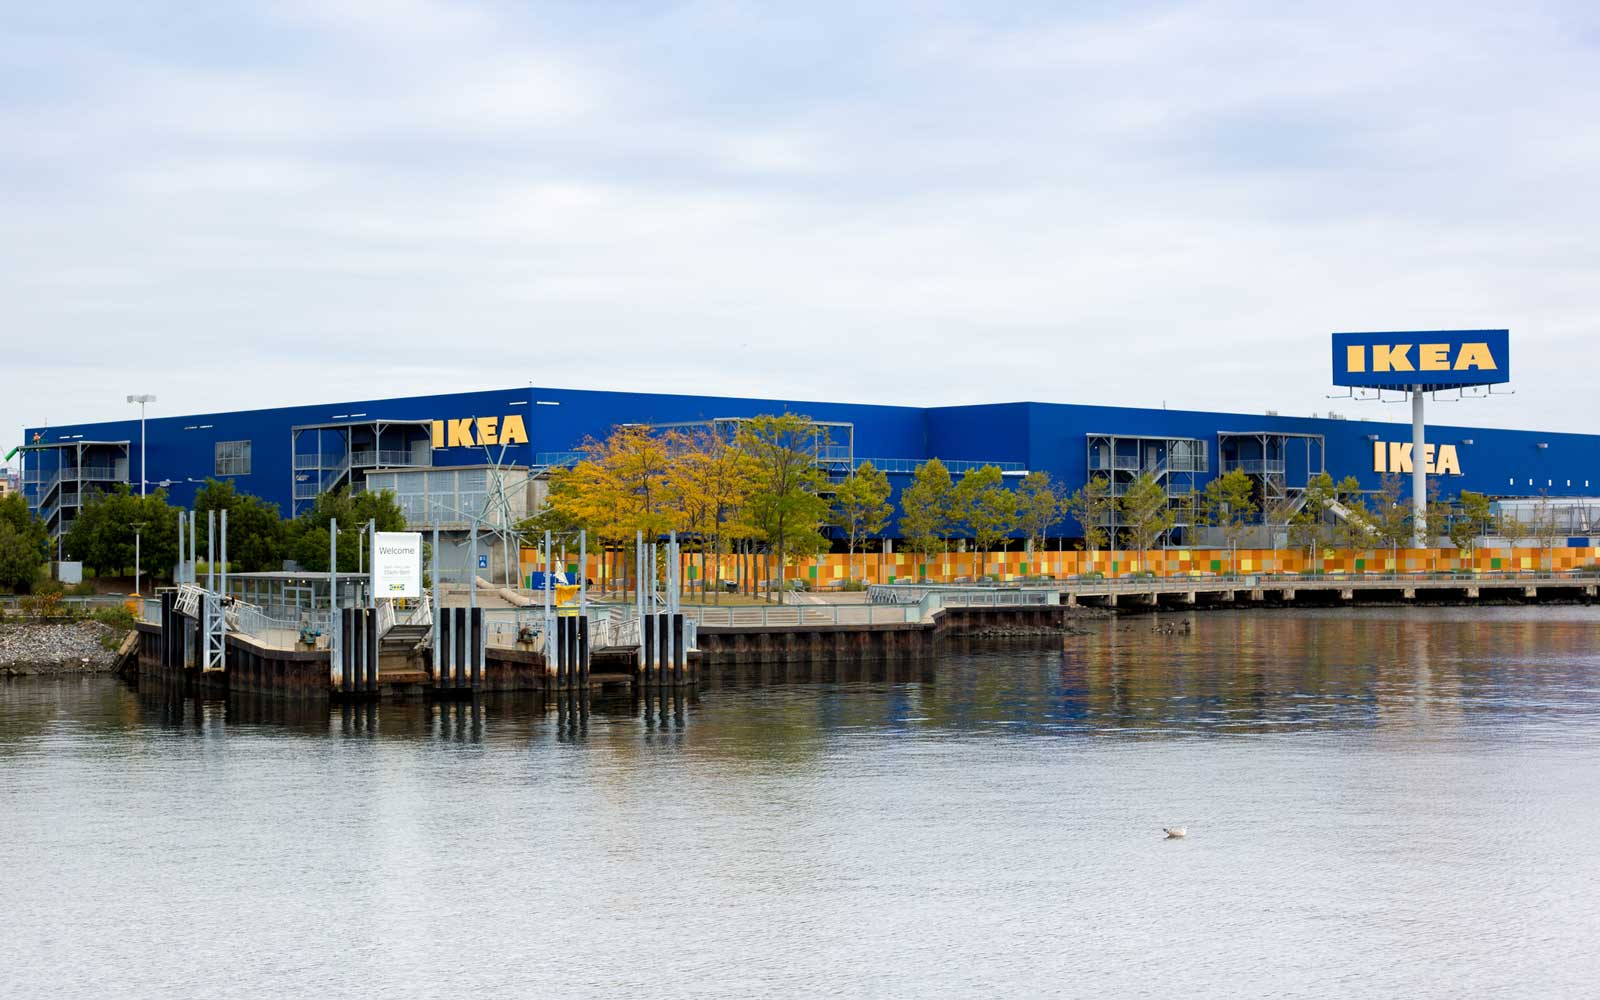 Red Hook, Brooklyn, NY: Ikea Seen From Water